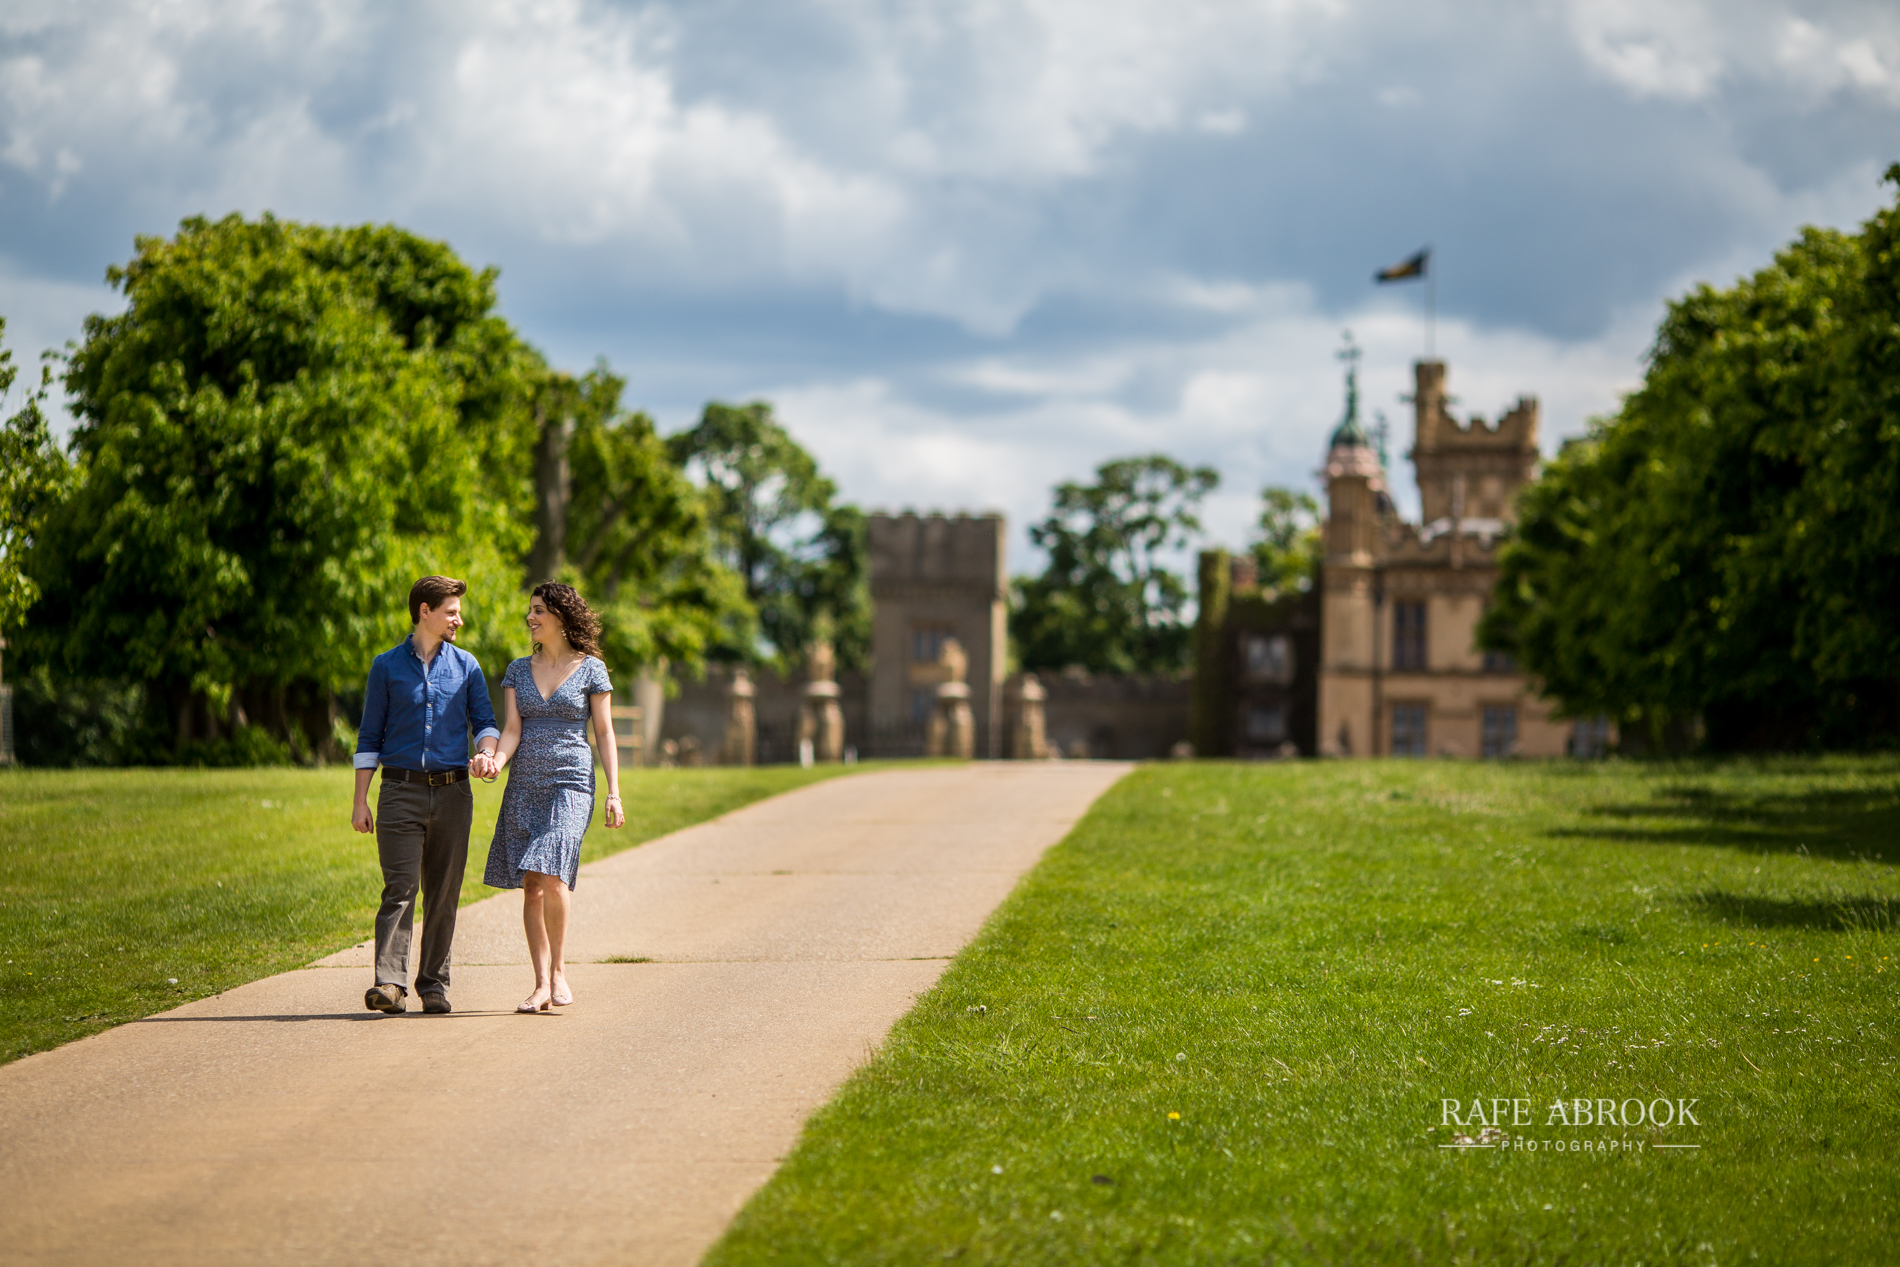 jade & sean engagement shoot knebworth park house hertfordshire-1016.jpg